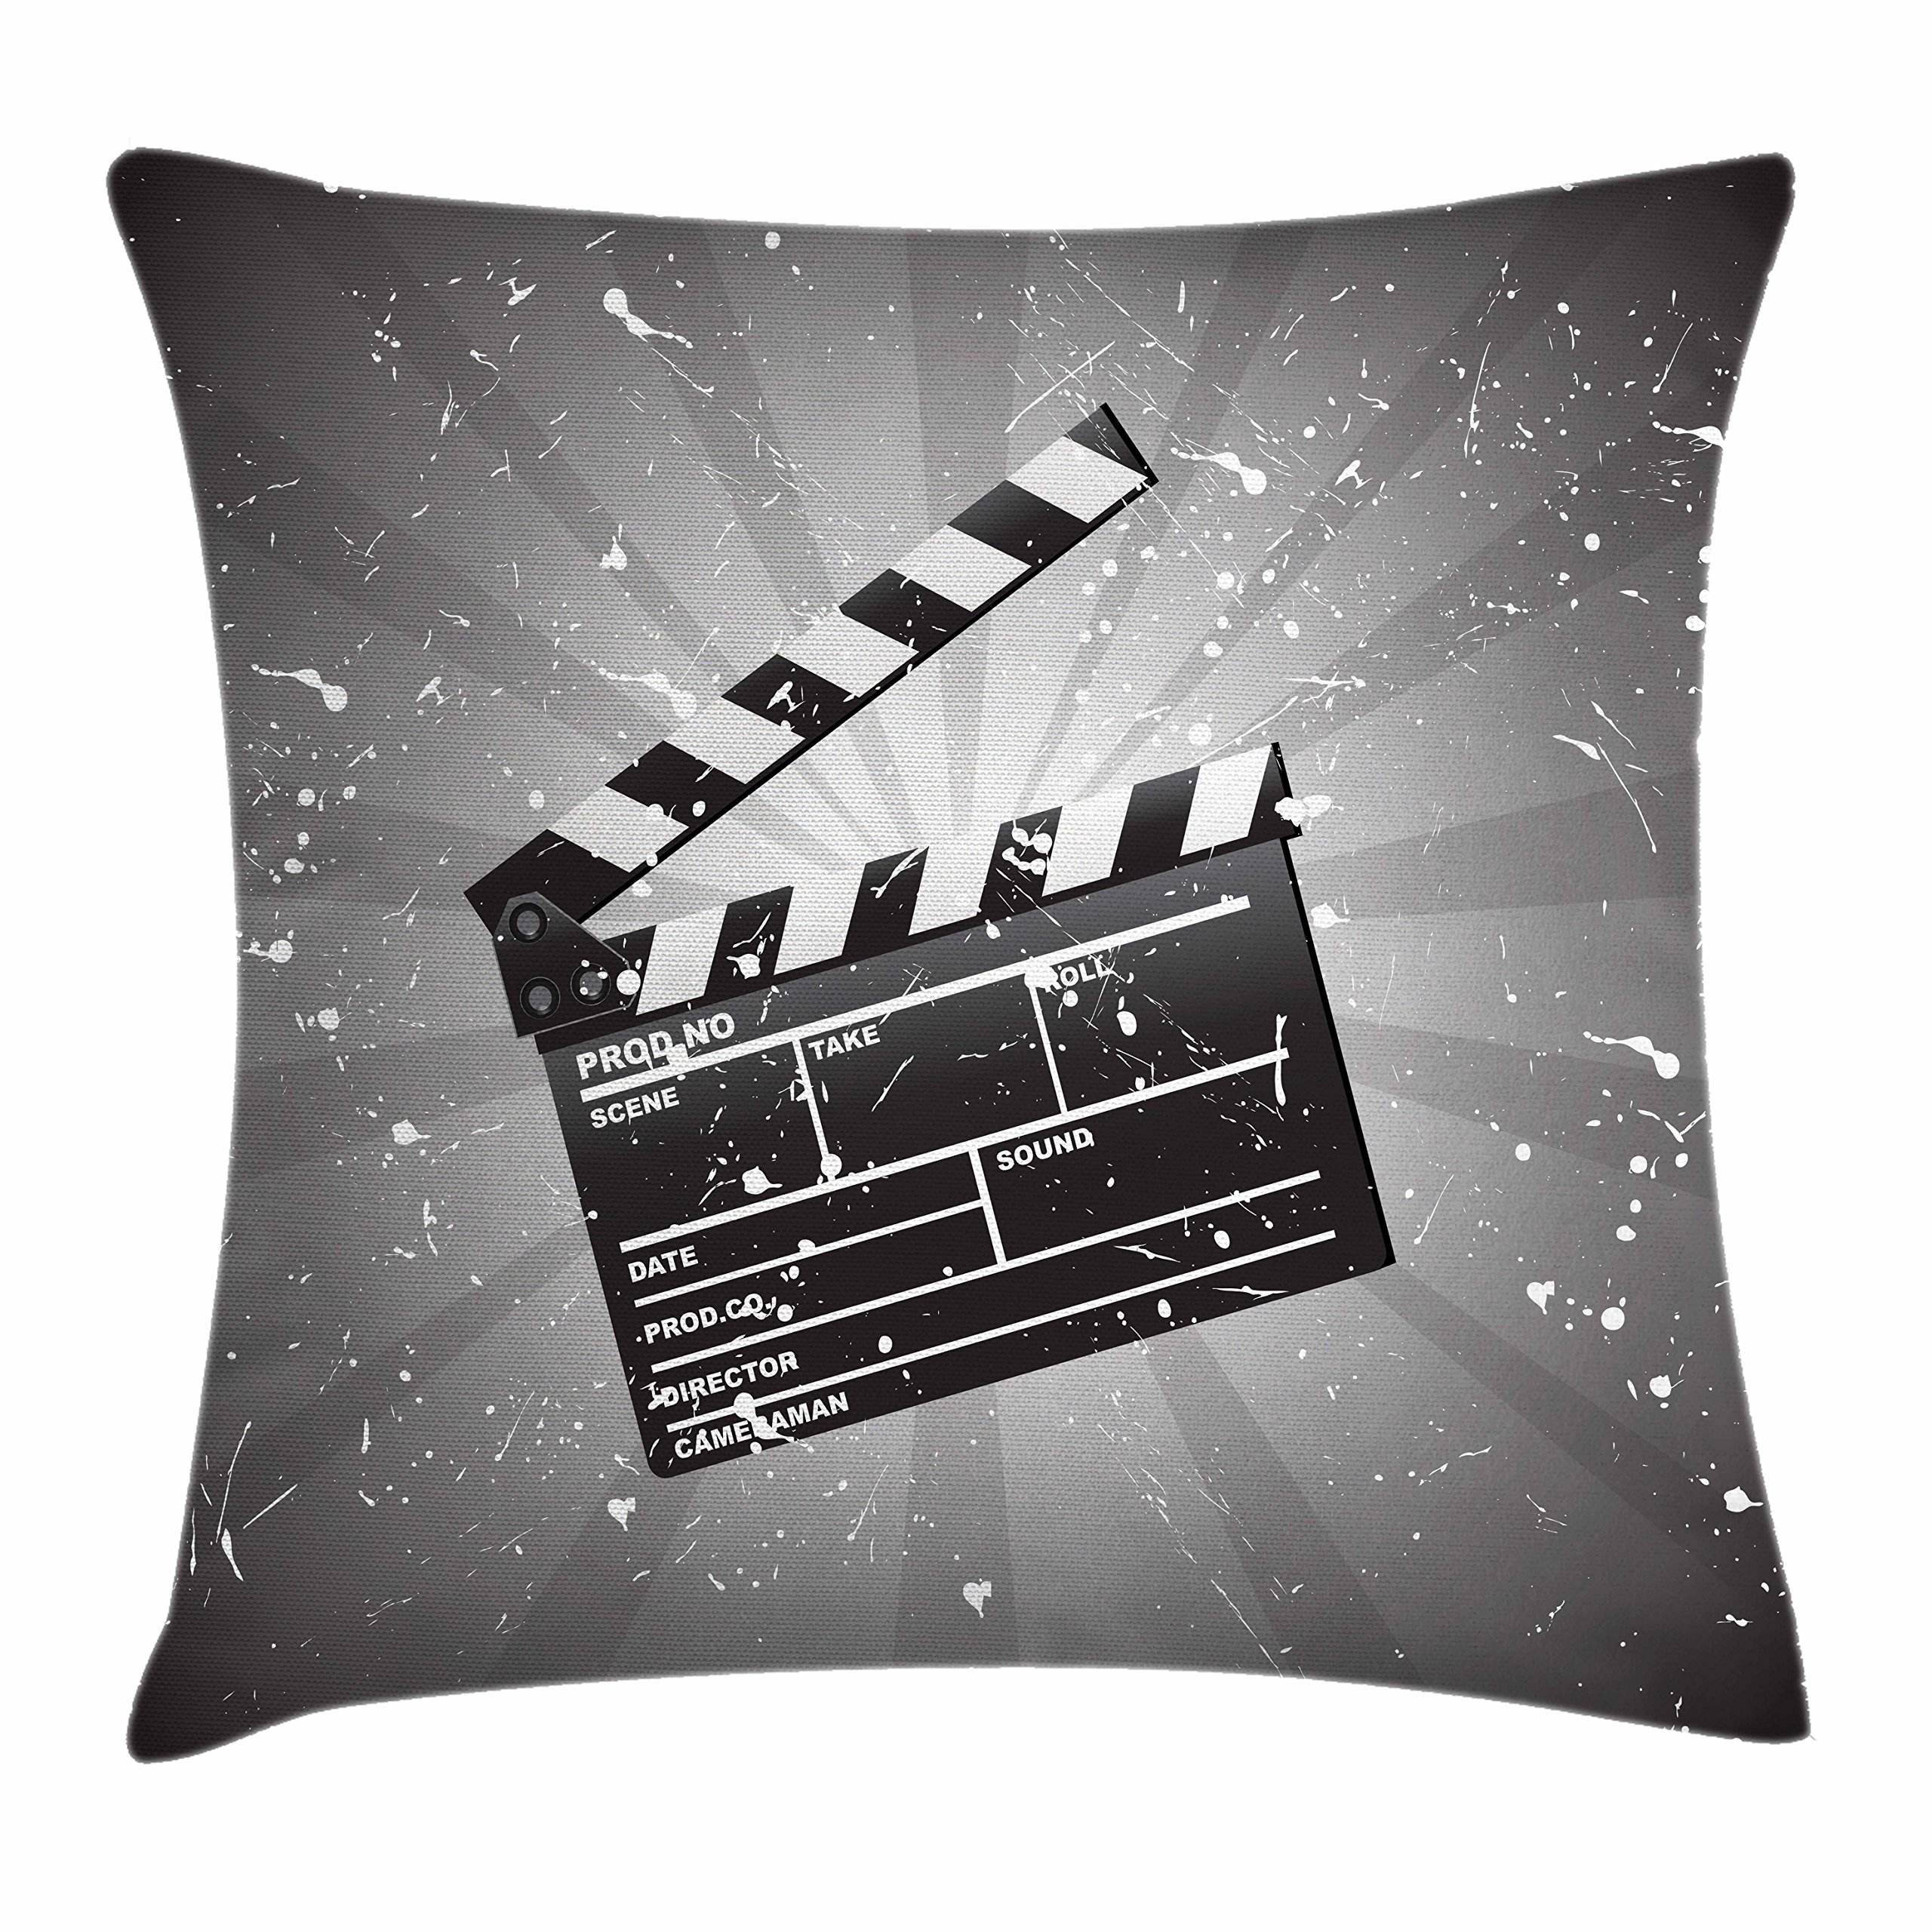 Ambesonne Movie Theater Throw Pillow Cushion Cover, Clapper Board on Retro Backdrop with Grunge Effect Director Cut Scene, Decorative Square Accent Pillow Case, 18 X 18 Inches, Grey Black White